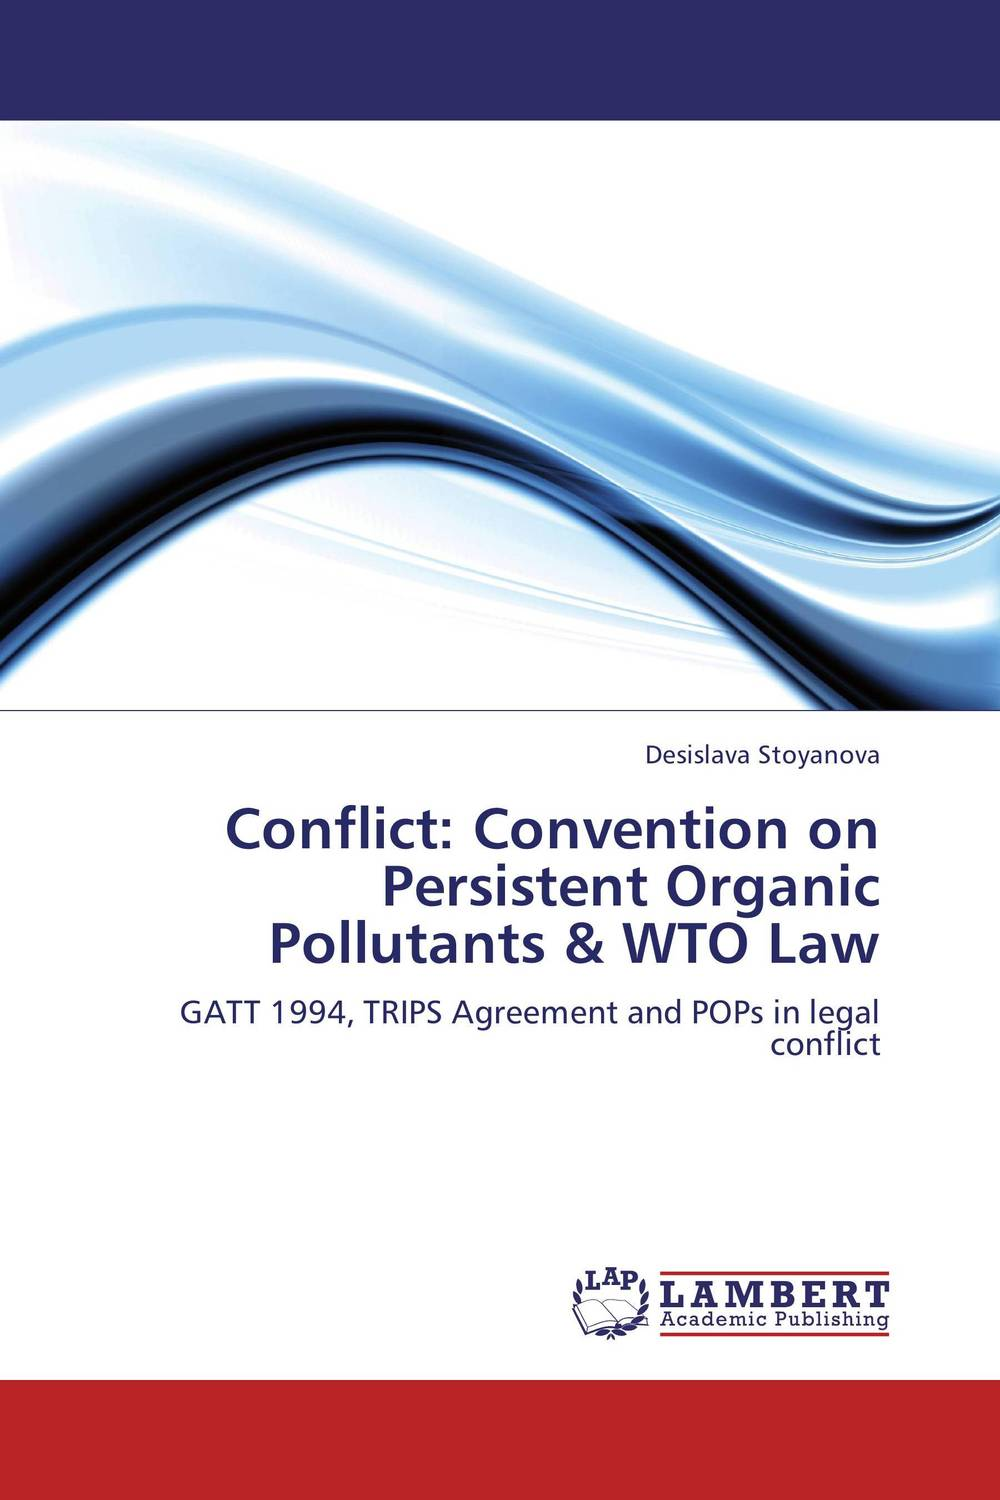 Conflict: Convention on Persistent Organic Pollutants & WTO Law